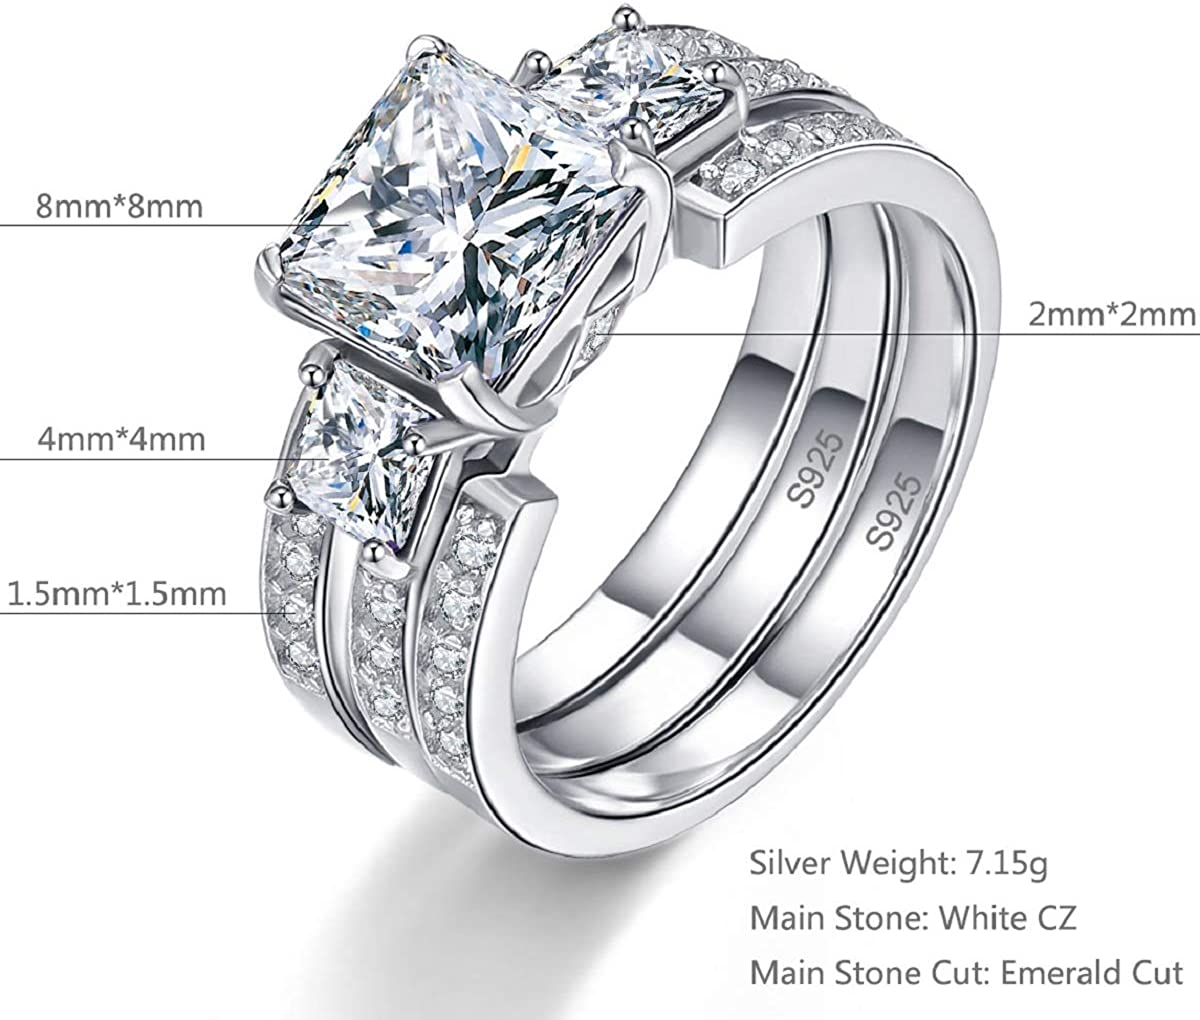 BONLAVIE Promise Silver Rings for Her Engagement Rings Past Present Future Cubic Zirconia Wedding Bridal Set Wedding Band Stackable Size 5-10